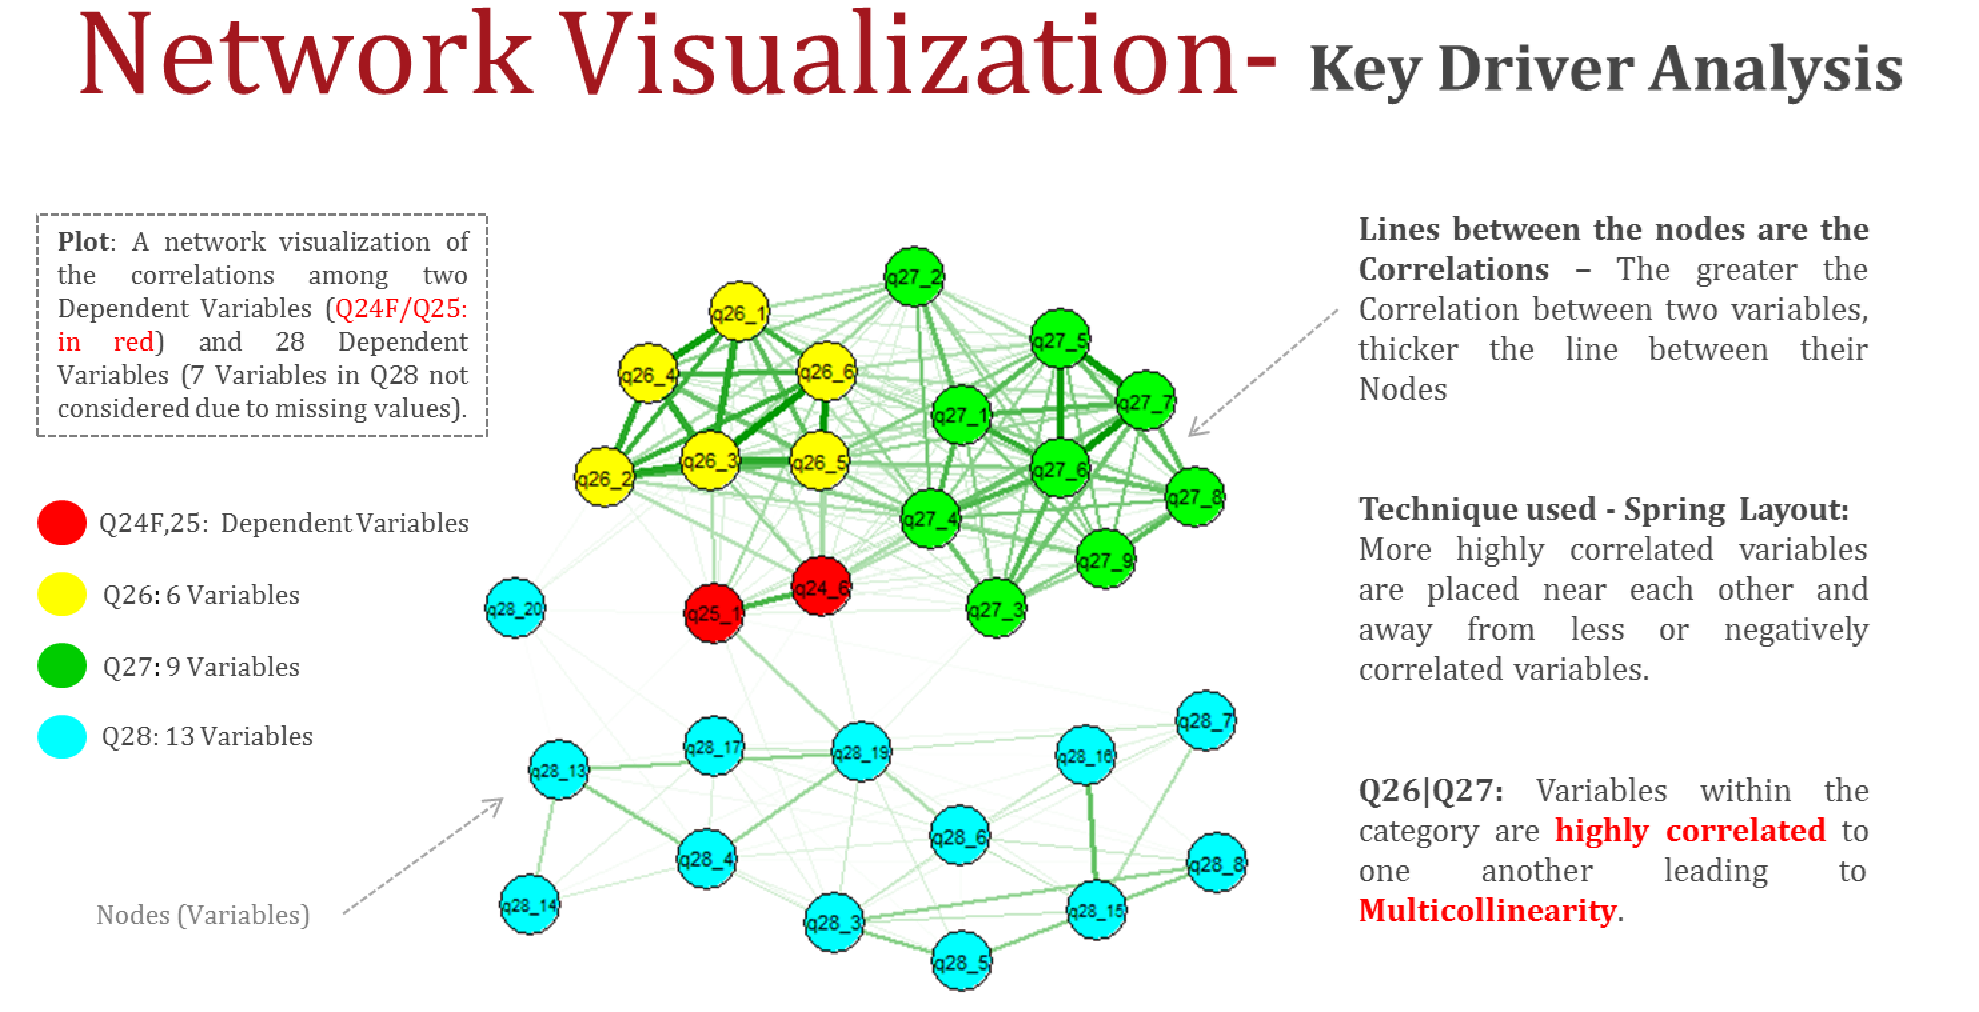 Network Visualization Map